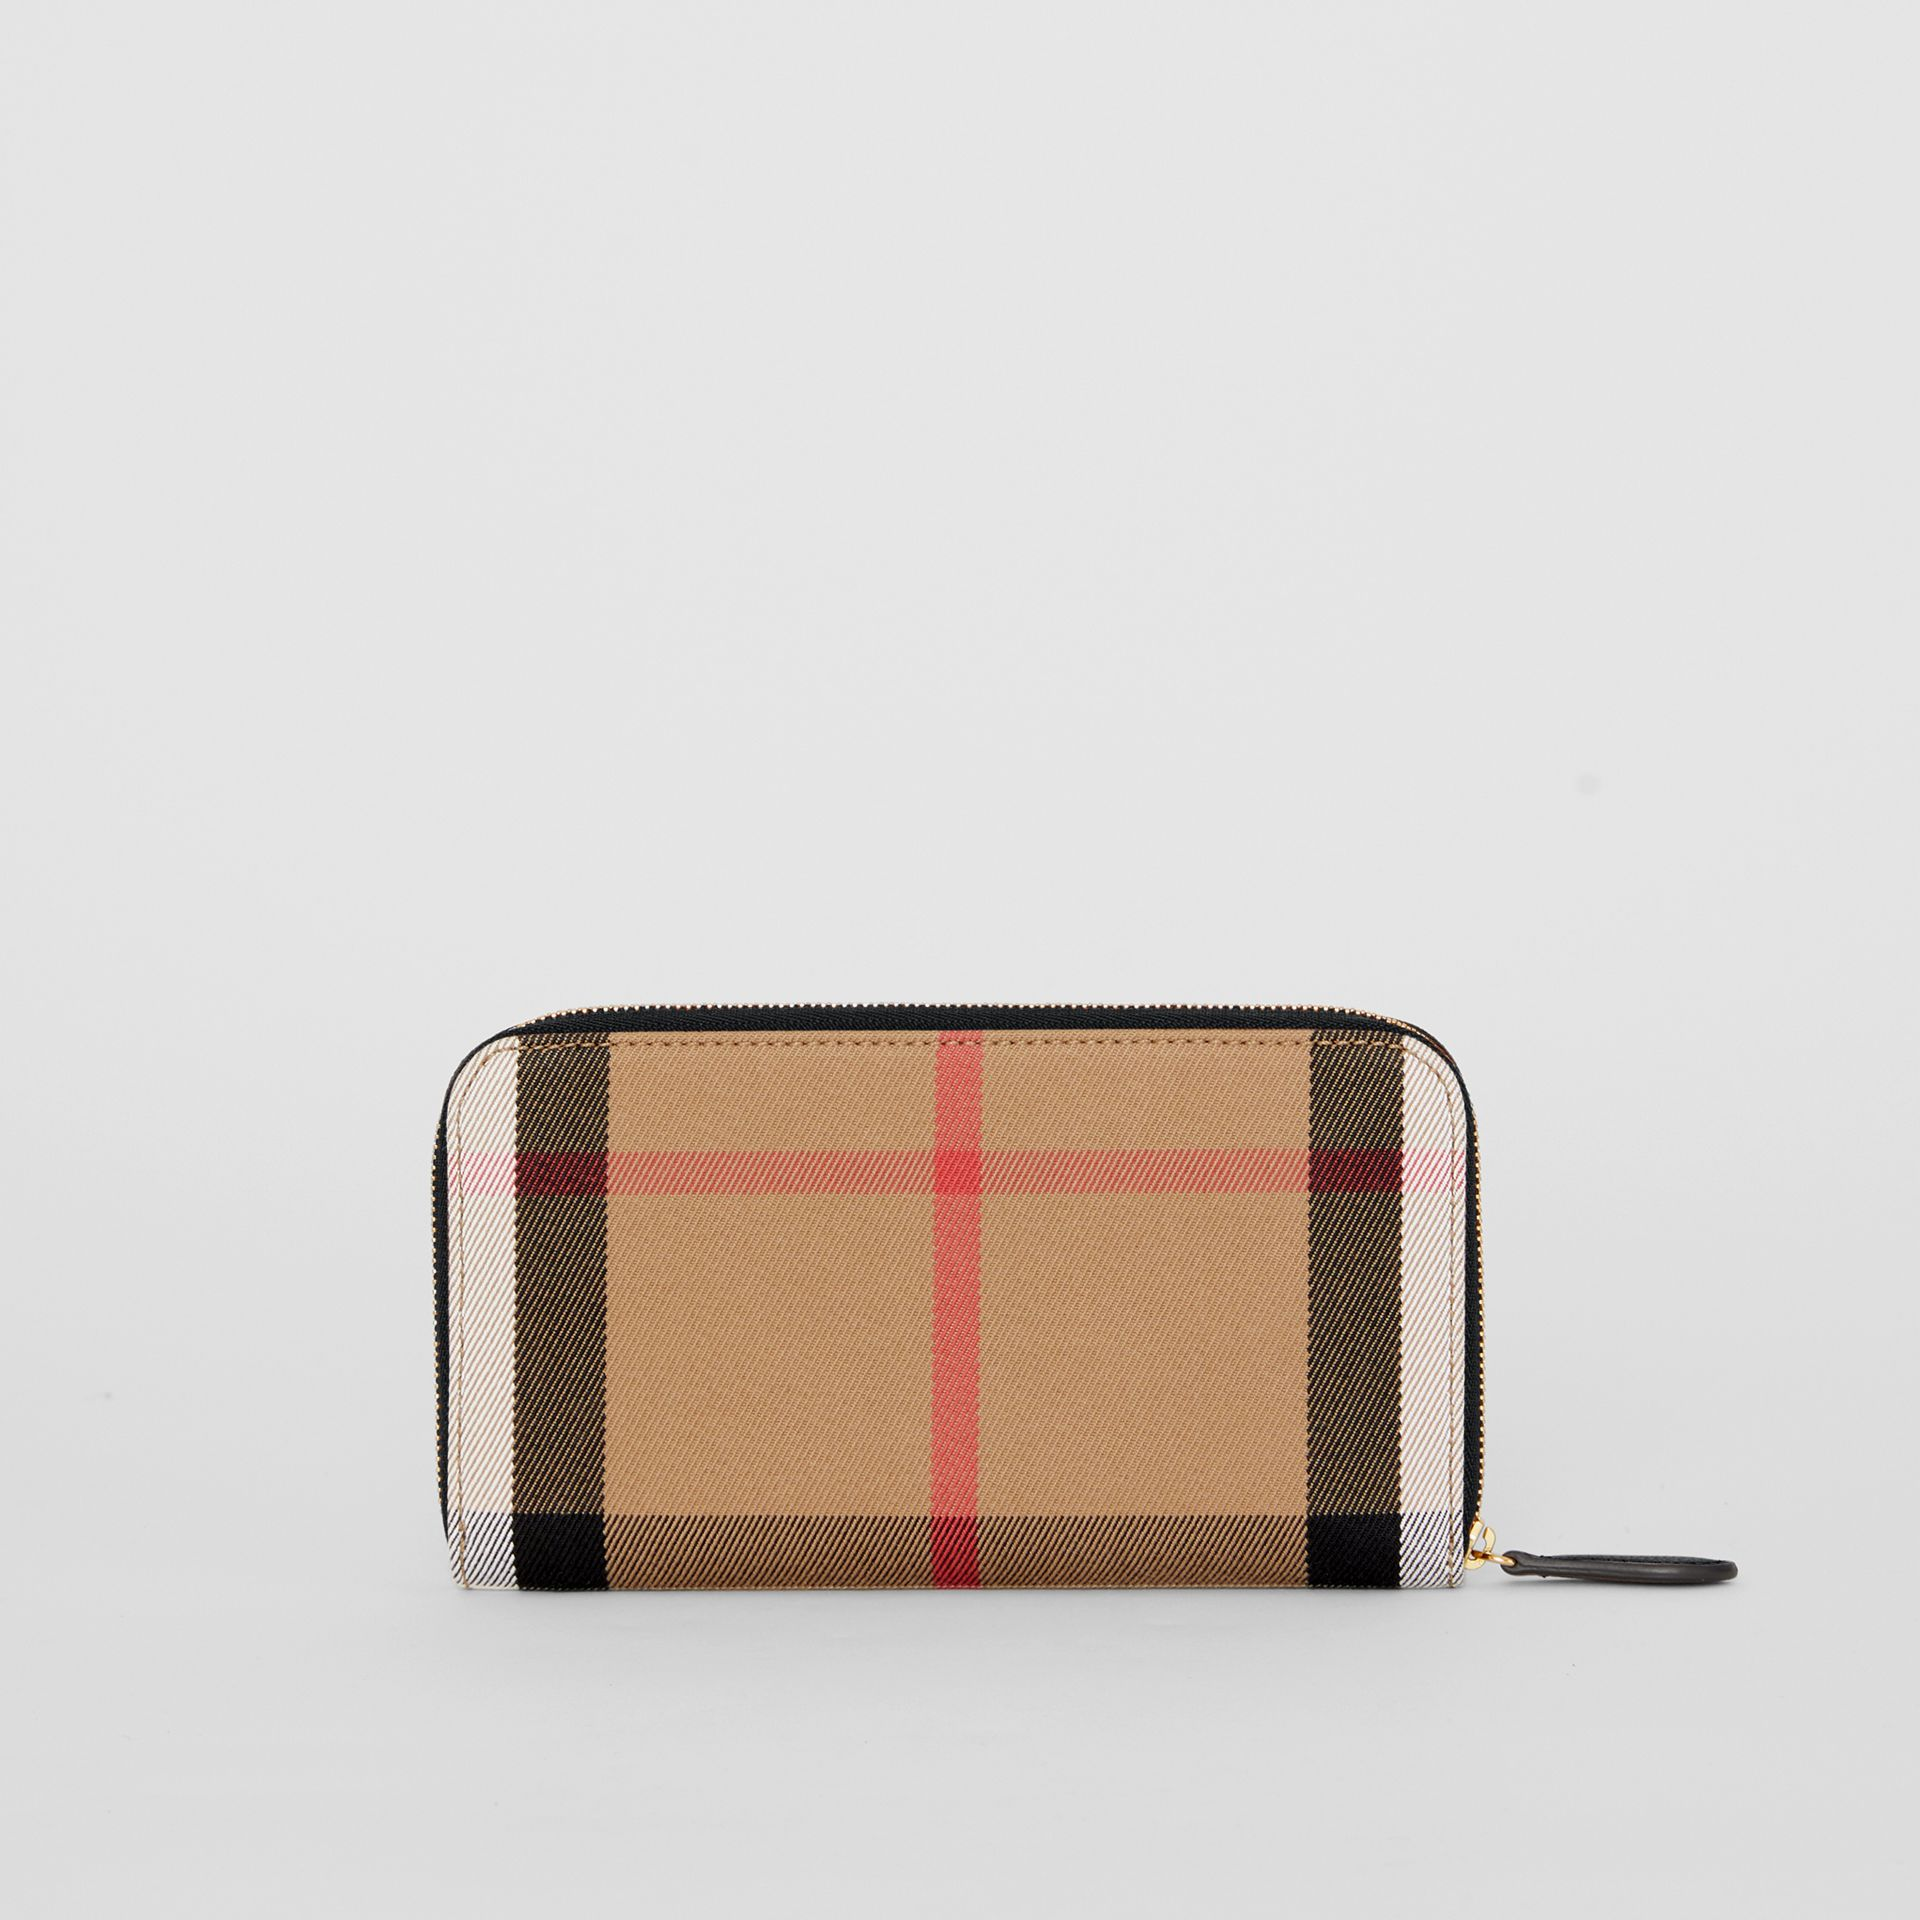 House Check and Leather Ziparound Wallet in Black - Women | Burberry - gallery image 2